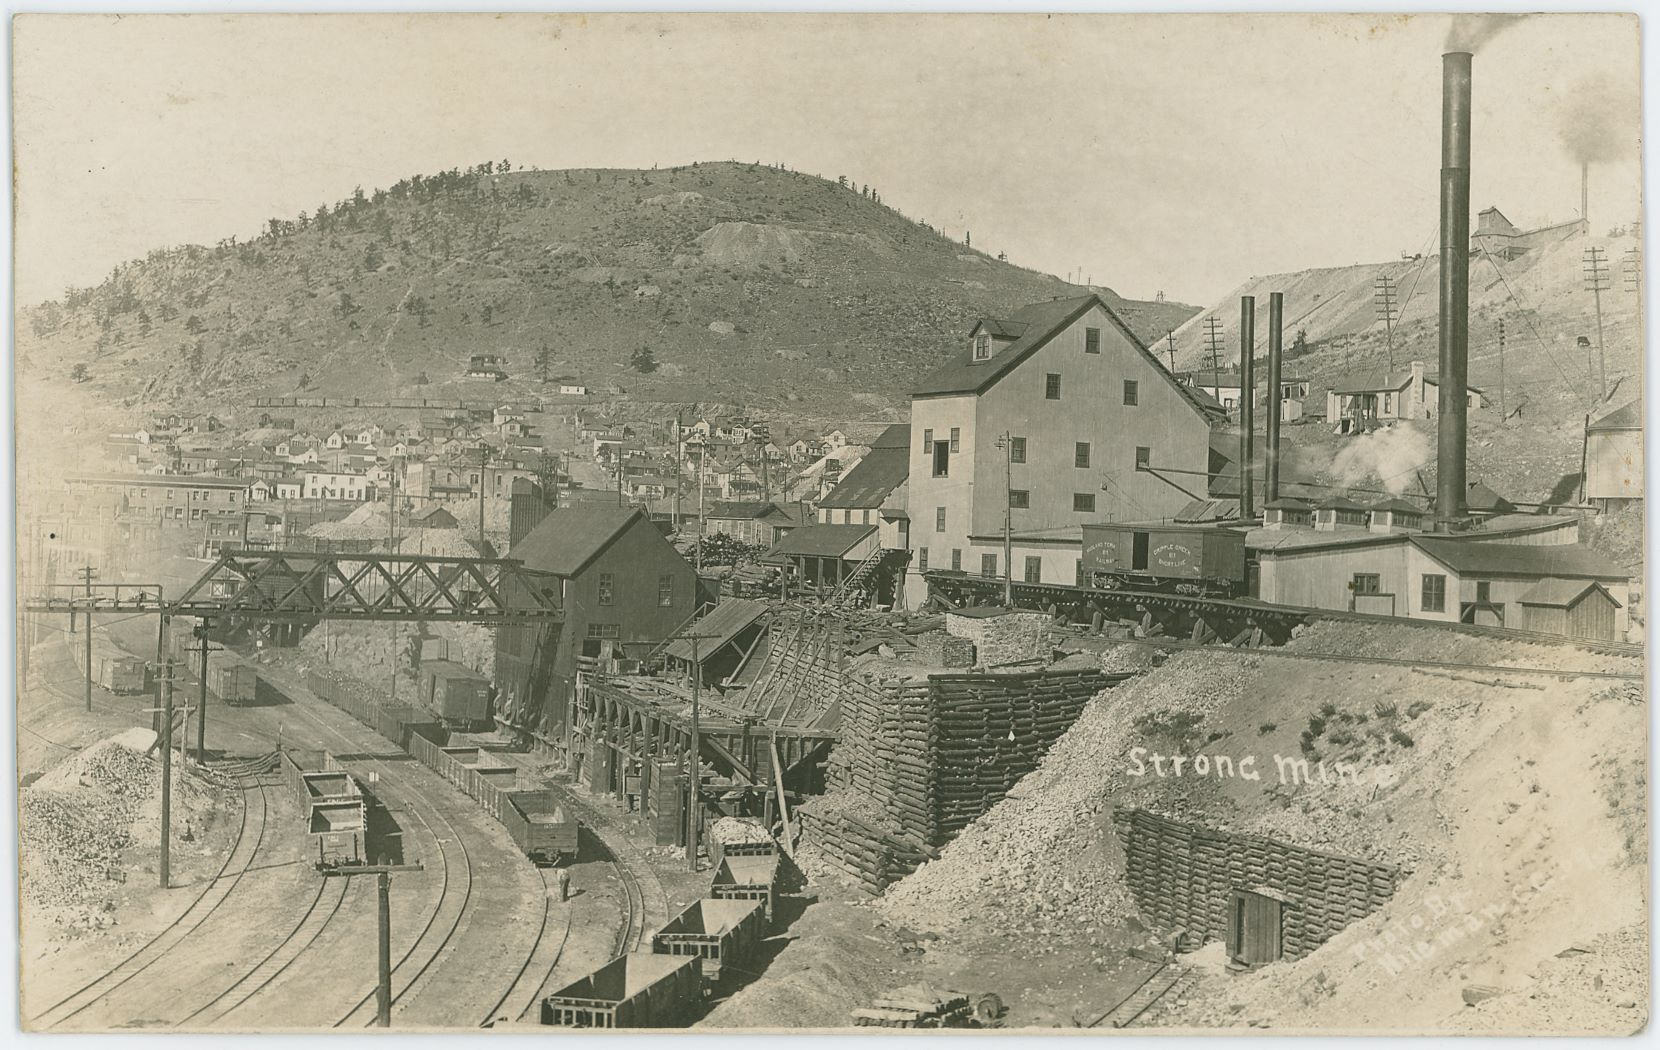 This view of the Strong Mine is quite a good one to tell how it looked sometime in 1909 when T.J. Hileman took the photo which was the base for this postcard view presented here. Down left is the yard of the F. & C.C. railroad, while the mainline of the Victor branch of the M.T. is shown entering the scene along the right-hand side, where there is also a side-spur for delivering coal to the powerplant of the Strong Mine for their operations, seen here with a single M.T, boxcar (no. 211) parked on the trestle, while the mainline where passenger trains was running is this side of that trestle, dropping downgrade to reach the Depot not seen in this view due to be behind the Strong Mine Ore-house.    Just behind the before mention ore-house is the Ore-house and headframe of the Mary Cashen Mine seen, with dumps around it and some of their cribbing's is seen behind the big truss bridge coming out of the Strong Mine Ore-House, extending across the F. & C.C. yard unto another smaller bridge and taking it to a rock-house outside this view which delivered dump ore to Short Line cars to be used as ballast, fill-mass and similar along the lines, from what I have understood it as.    Up near right top corner the dumps and Shaft House of the Ajax Mine is seen poking up into the sky, and about center left-right and about 1/5 down from top, there is the dump of the Nellie V. Mine with a smaller two-post Head Frame and a hoist house and shed together as a long structure from what I can gather in a high dpi scan of this view. This do not match what Sanborn 1908 say the Nellie V. mine was to look like, as that say it is a shaft house type of structure.    I wonder if I see the Columbine Tunnel or if it is another one which is seen a distance to the left of the extension of Diamond Avenue up to the M.T. tracks in the higher dpi scans. Seen about 1/5 in from the left-hand side and 2/5 down from the top, a dump is there in addition to a tunnel portal and some sheds to the left of the adit opening.